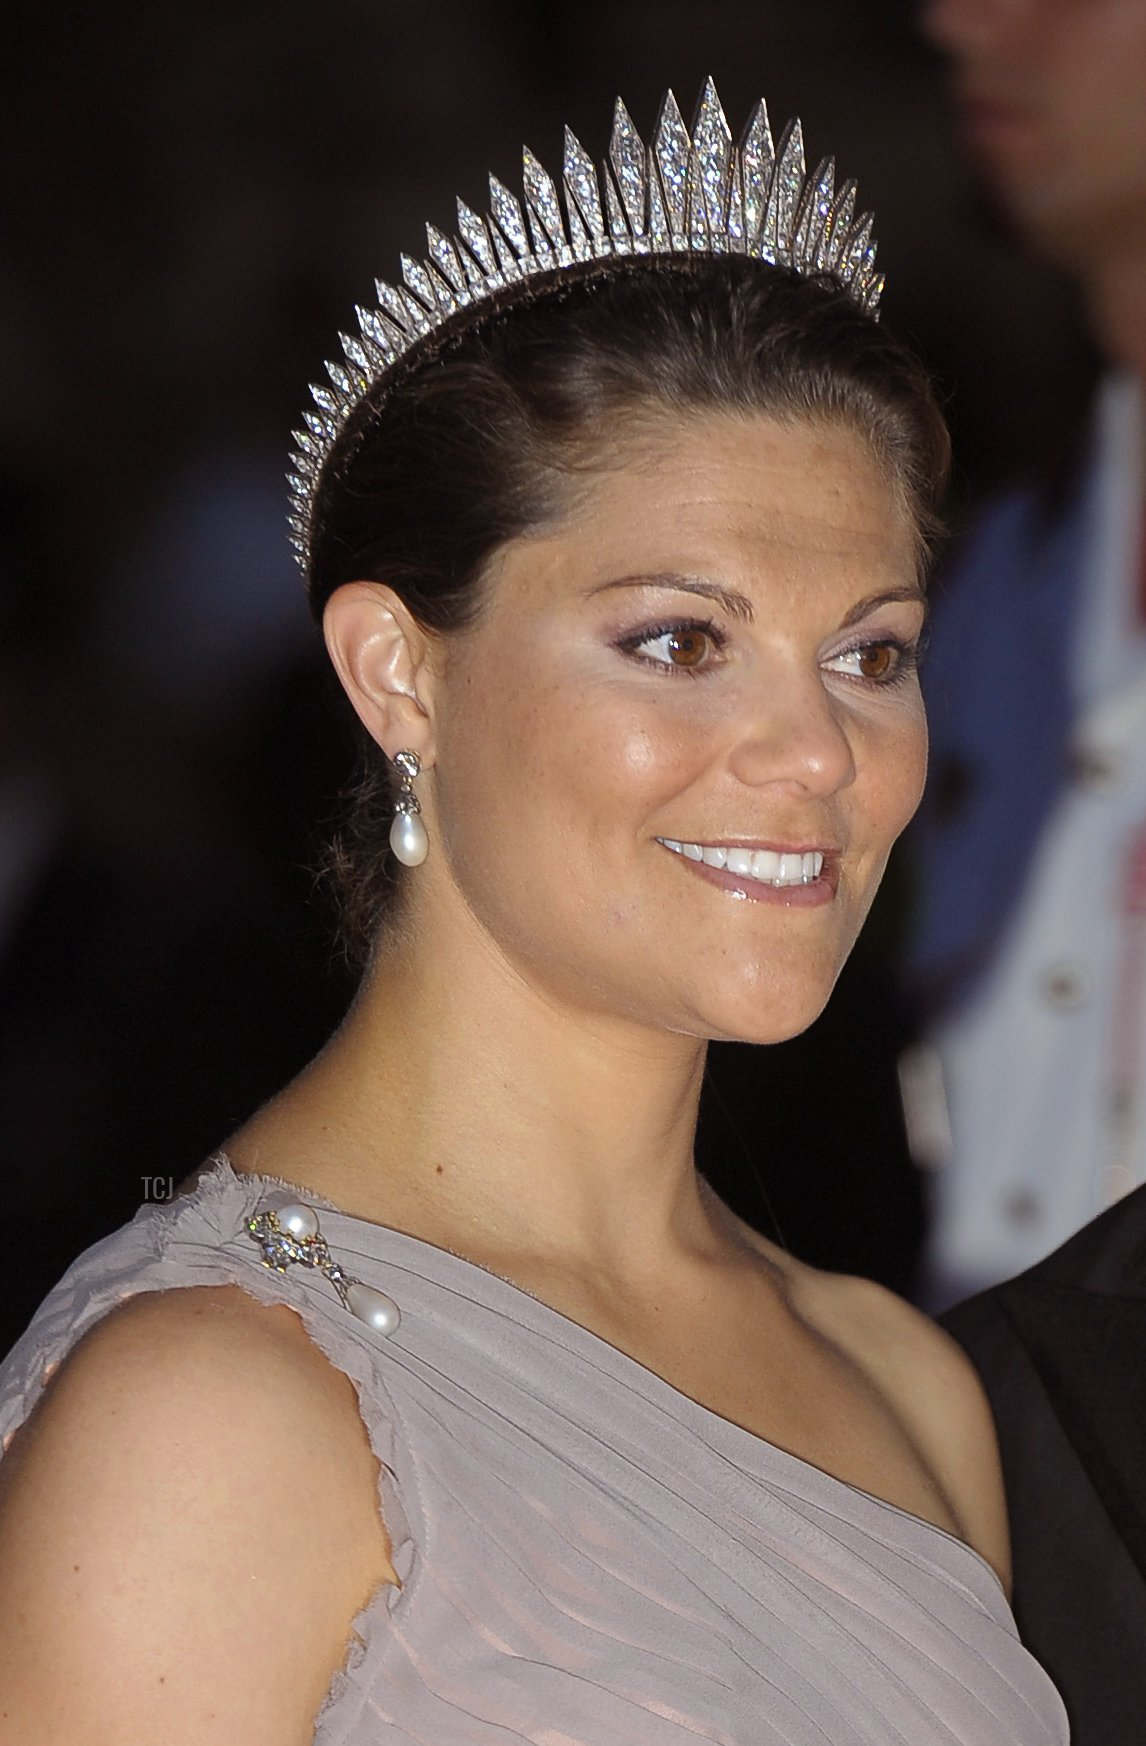 Sweden's Crown Princess Victoria and Duke of Vastergotland of Sweden Prince Daniel arrive for a dinner at Opera terraces after the religious wedding ceremony of Prince Albert II of Monaco and Princess Charlene of Monaco on July 2, 2011 in Monaco